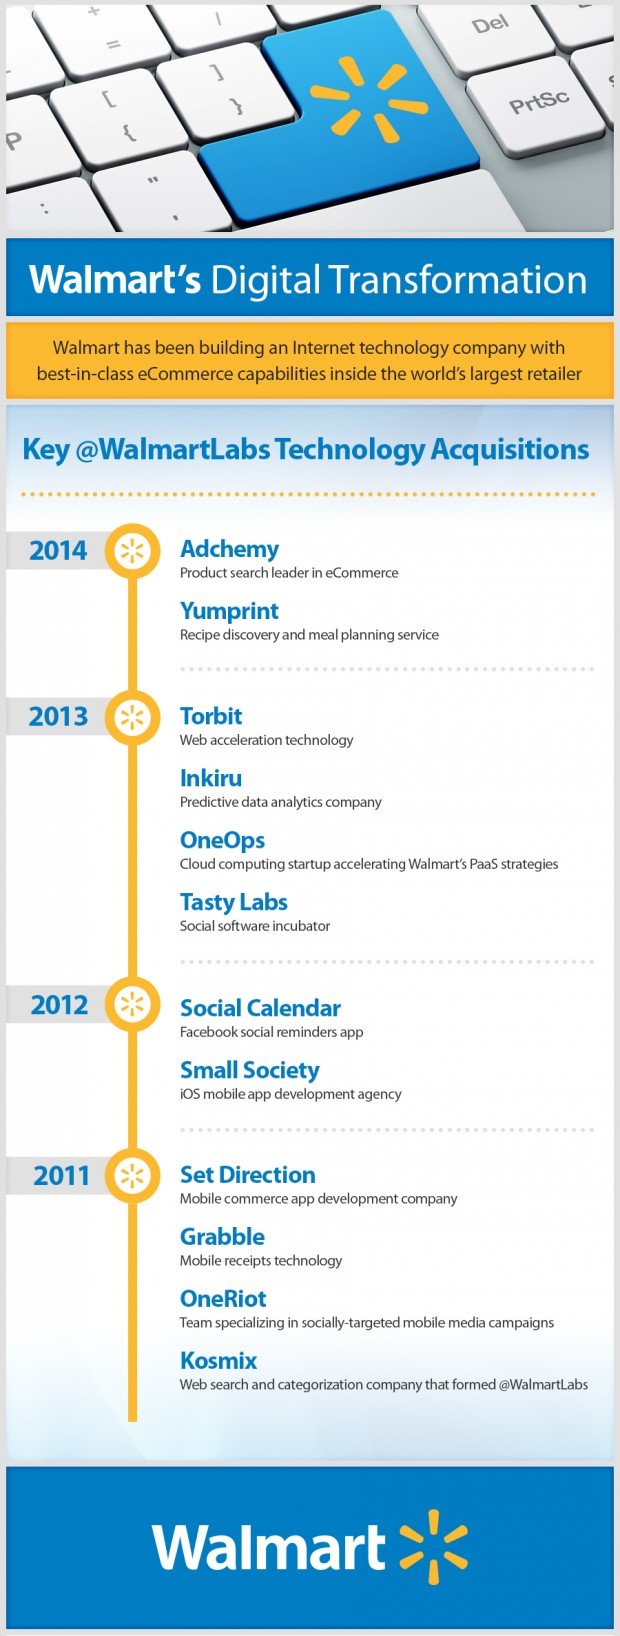 @WalmartLabs acquisitions timeline infographic